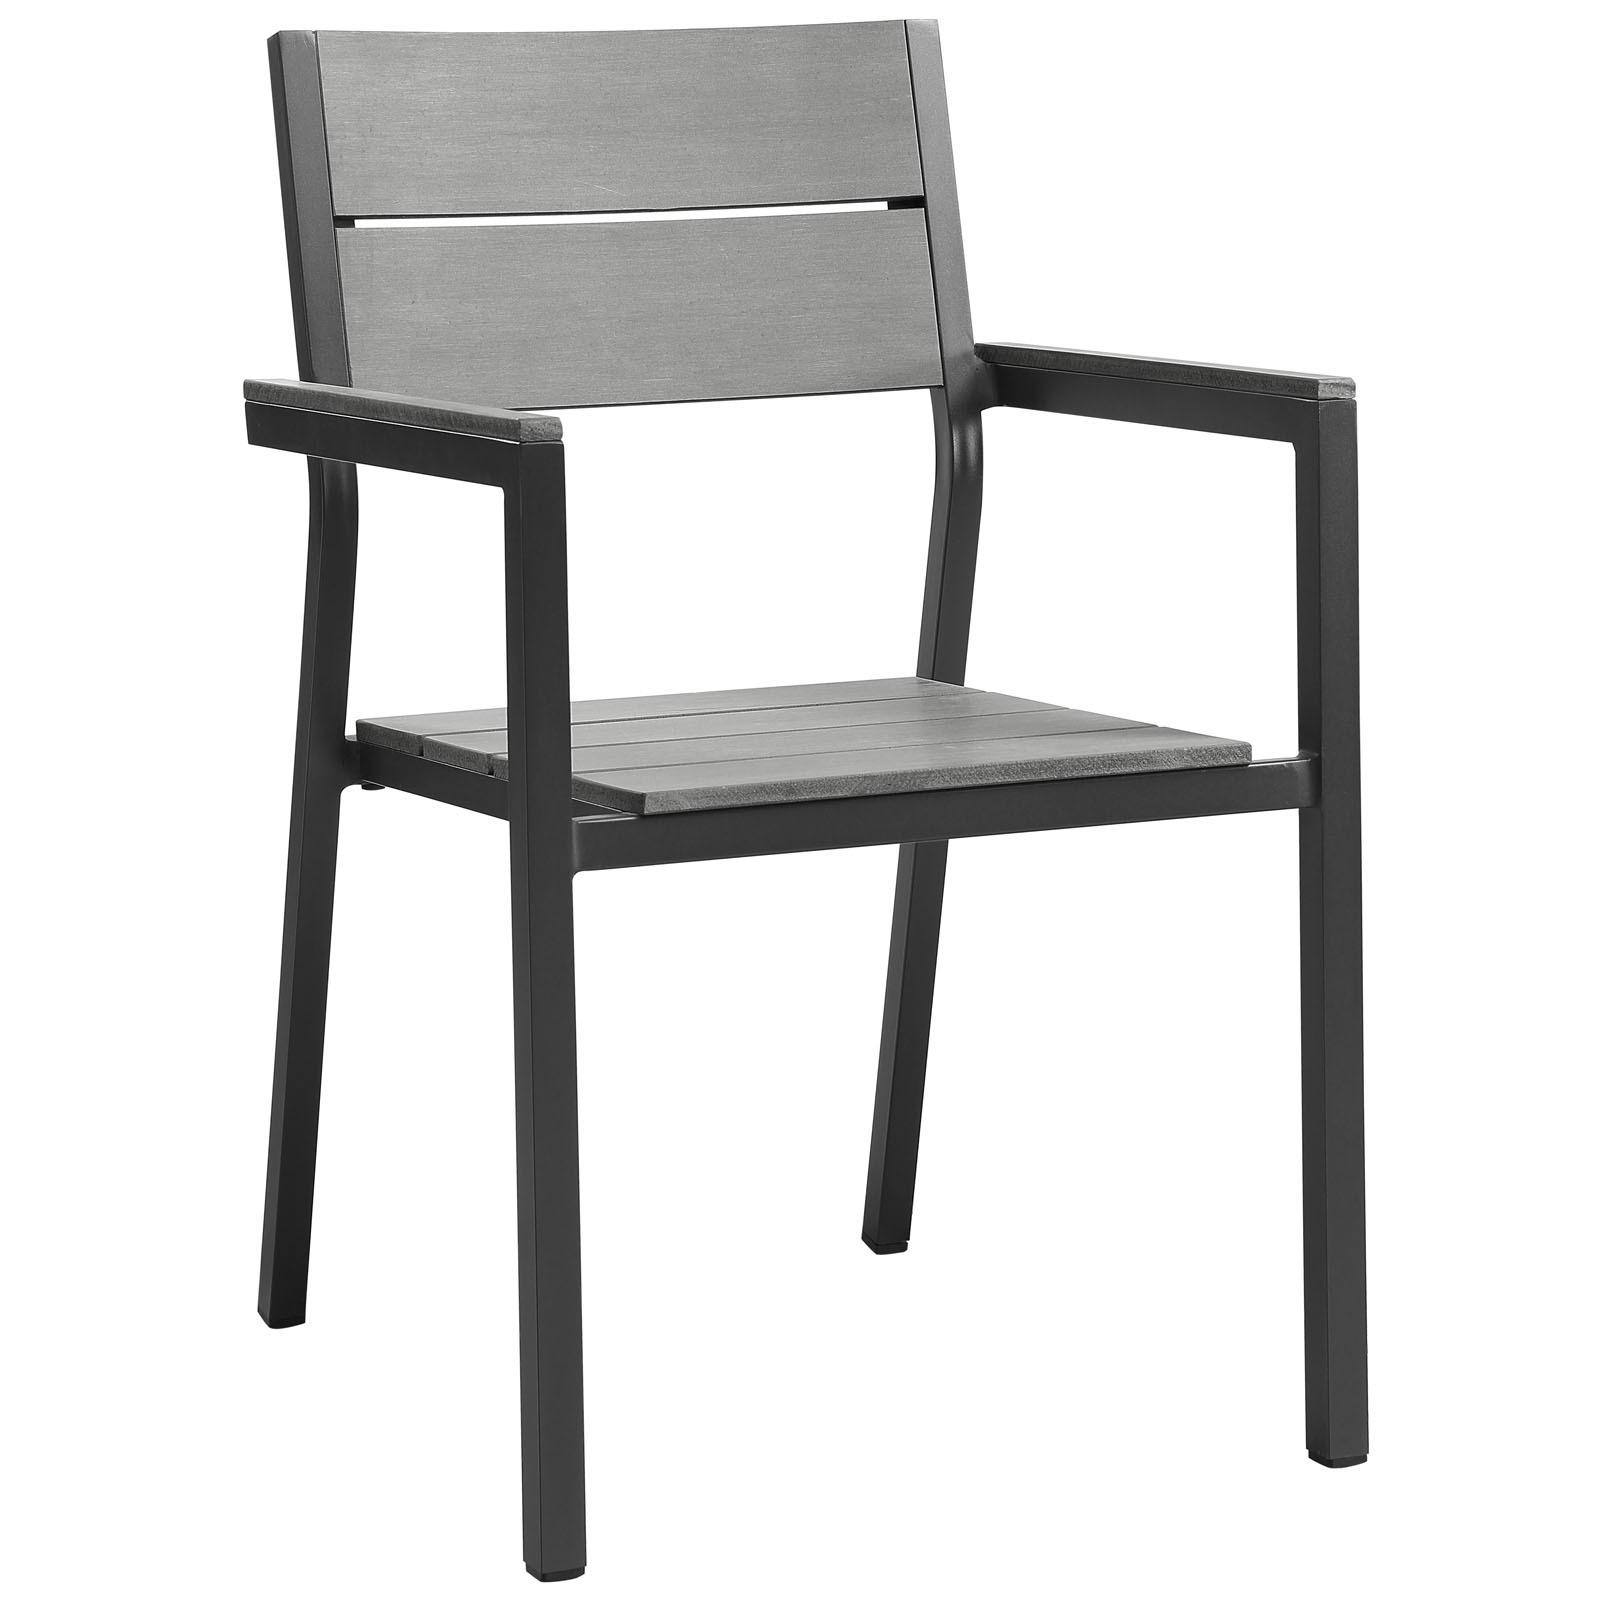 Modway Maine Dining Outdoor Patio Armchair, Multiple Colors